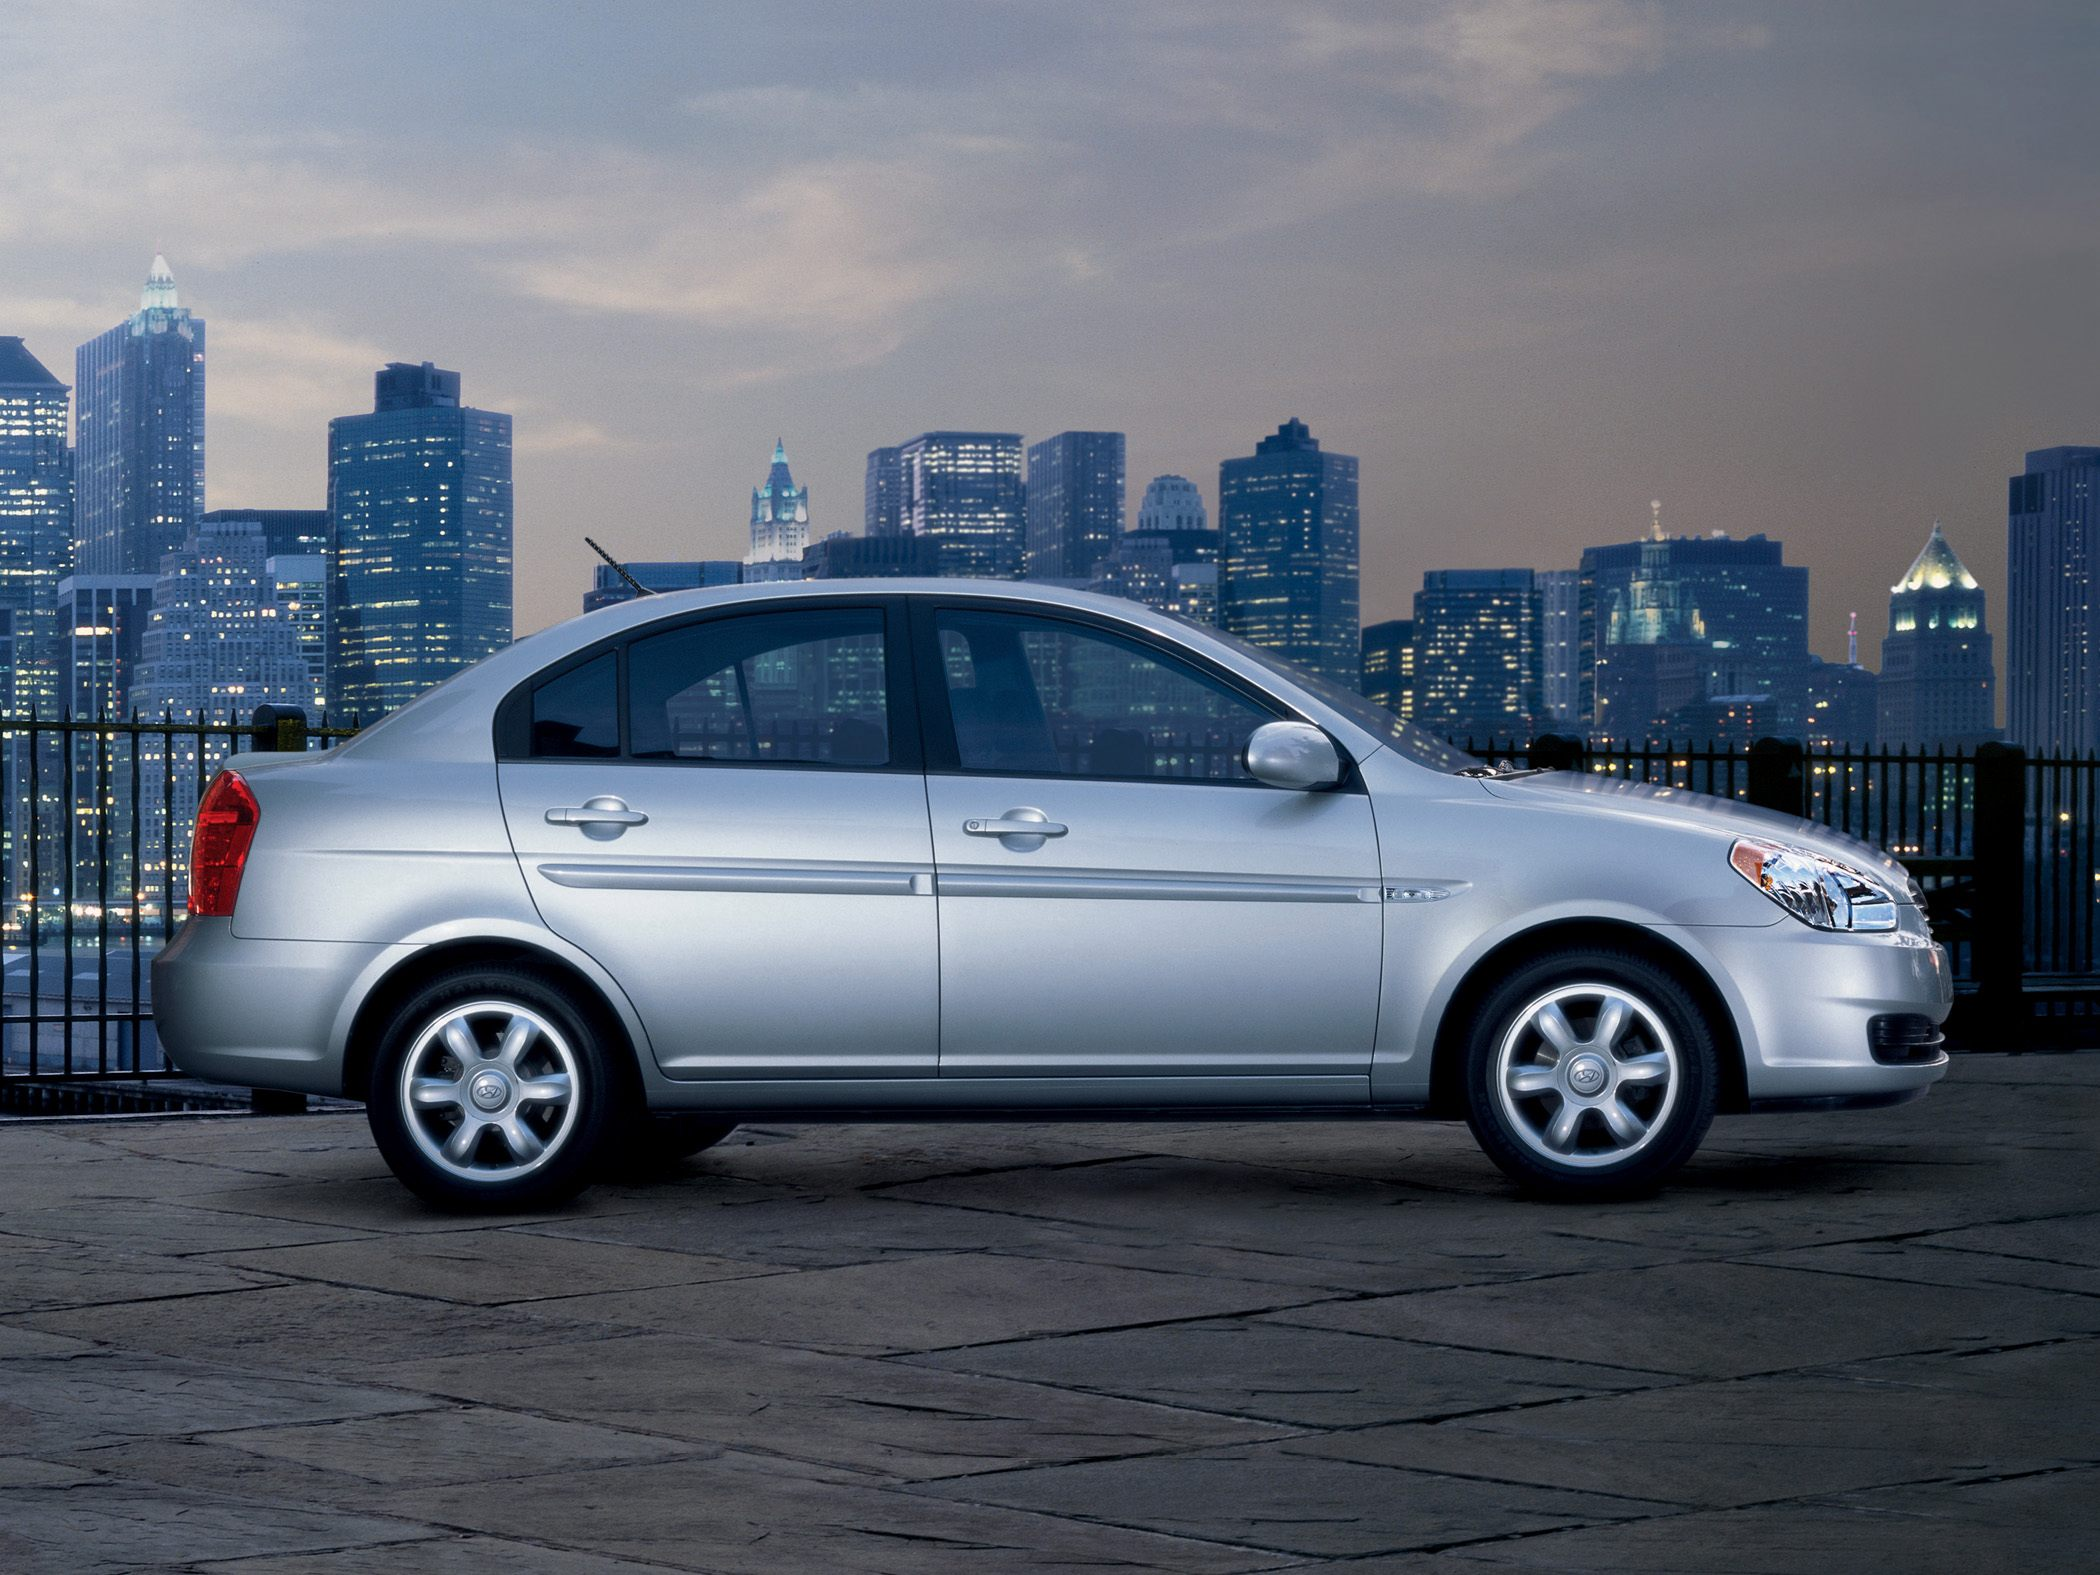 2010 Hyundai Accent - Information and photos - Zomb Drive